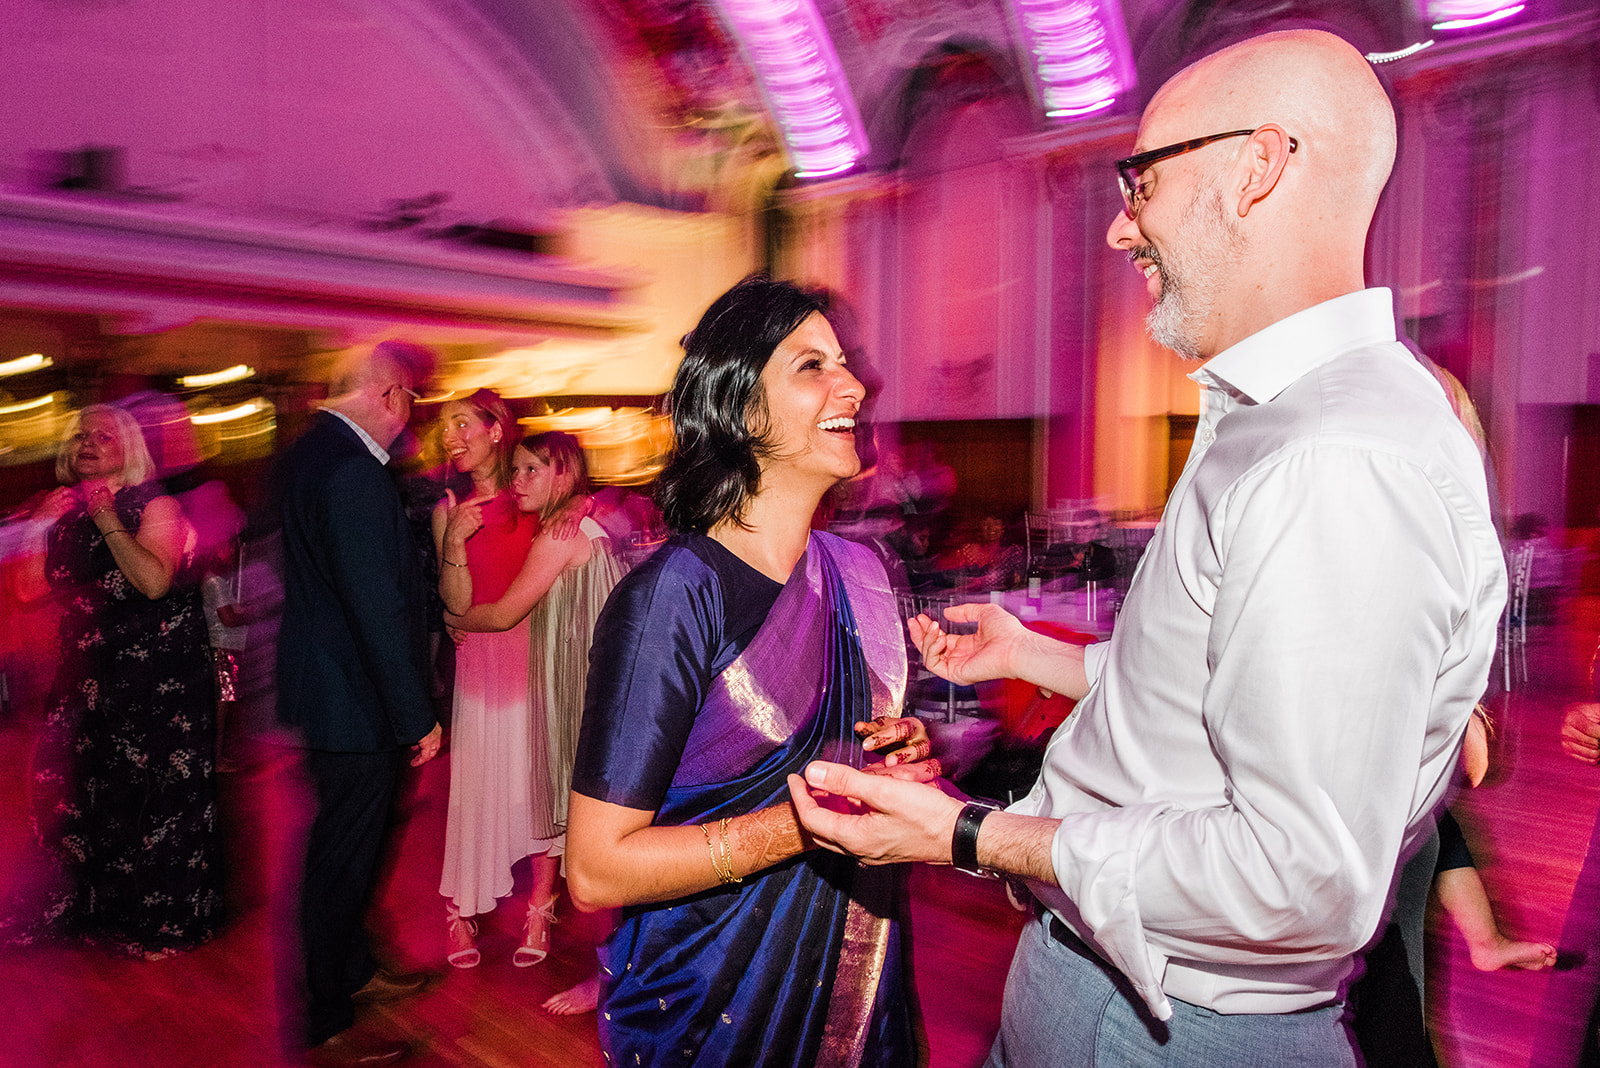 bride-in-pink-and-purple-wedding-sari-dances-with-groom-at-stockport-town-hall-wedding-party